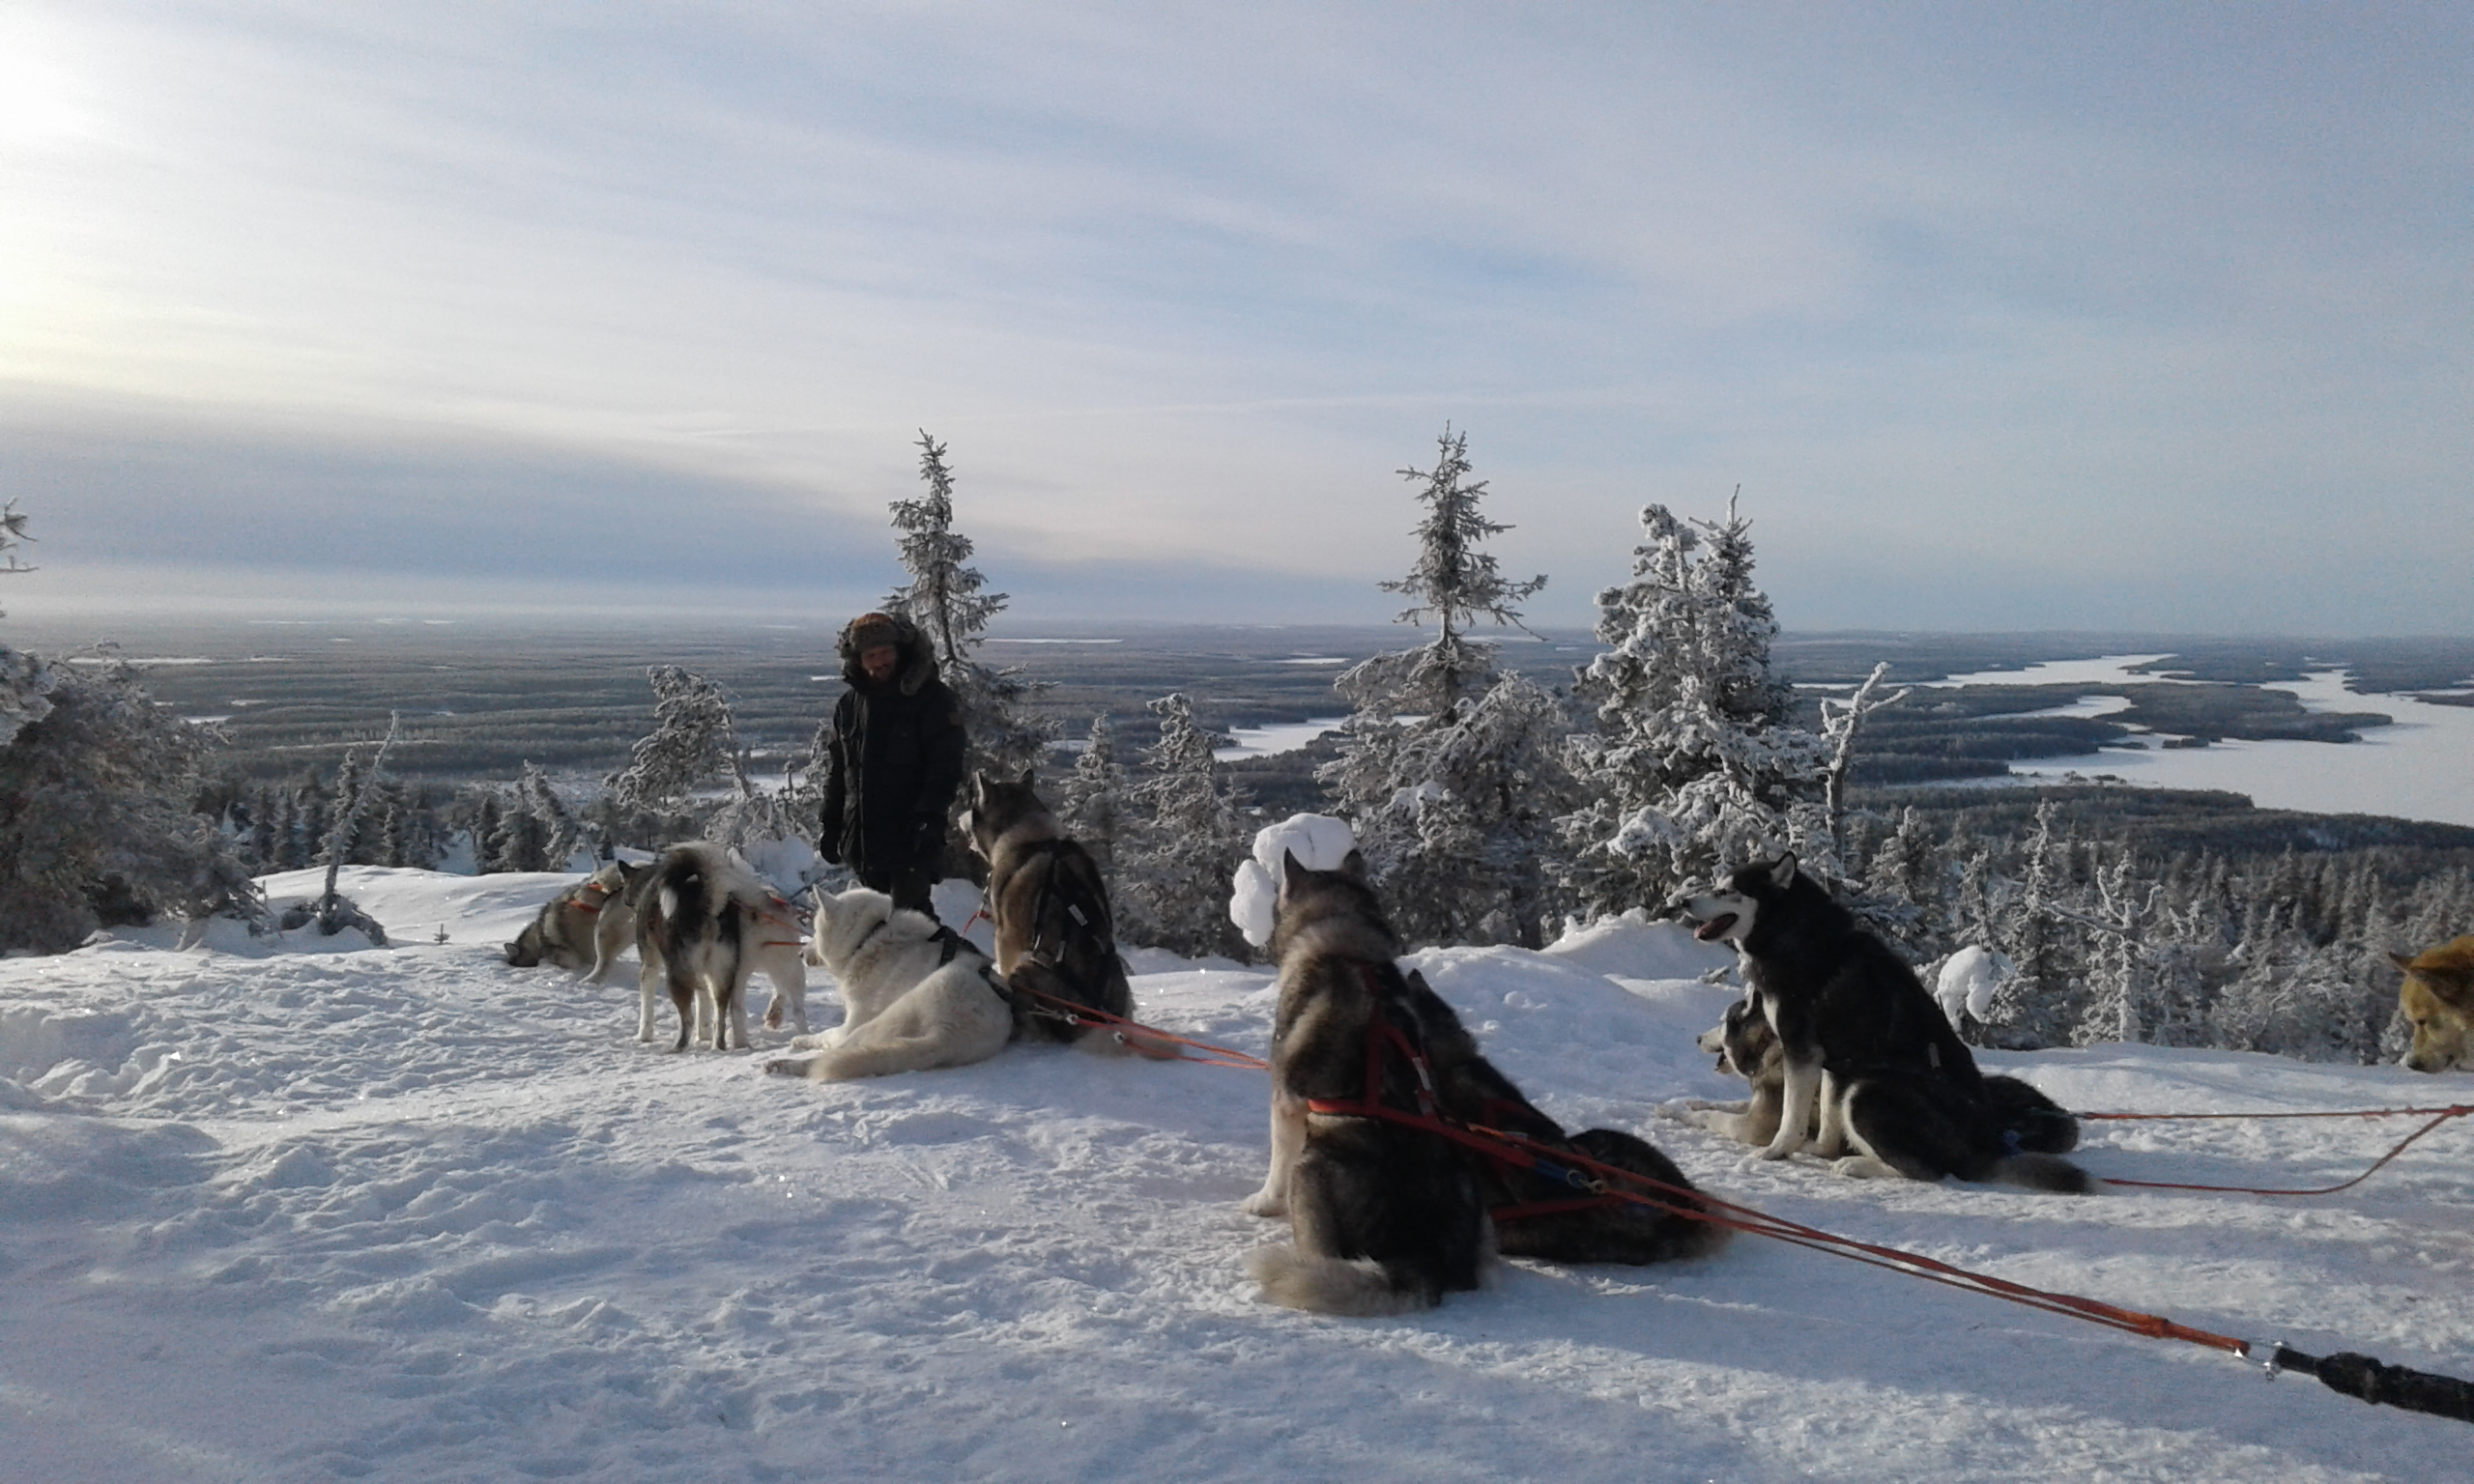 Iivaara sled dogs